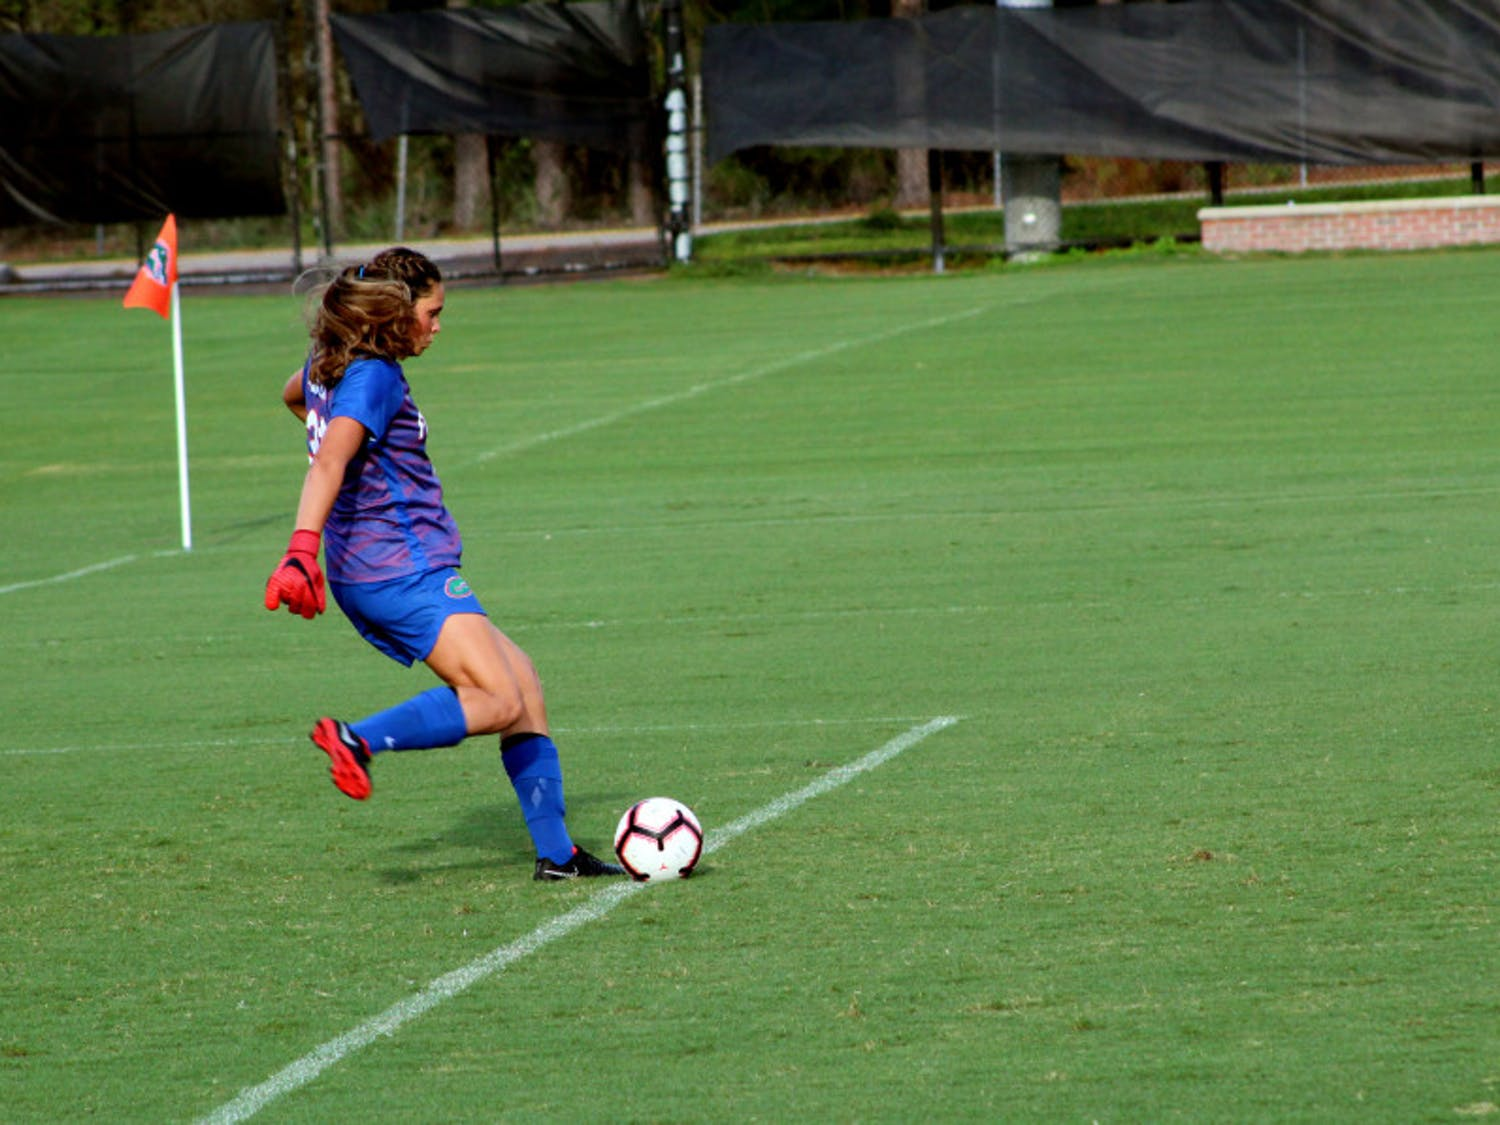 Florida goalkeeper Kaylan Marckese saved three shots in the first half of UF's 0-0 tie against Alabama on Sunday.